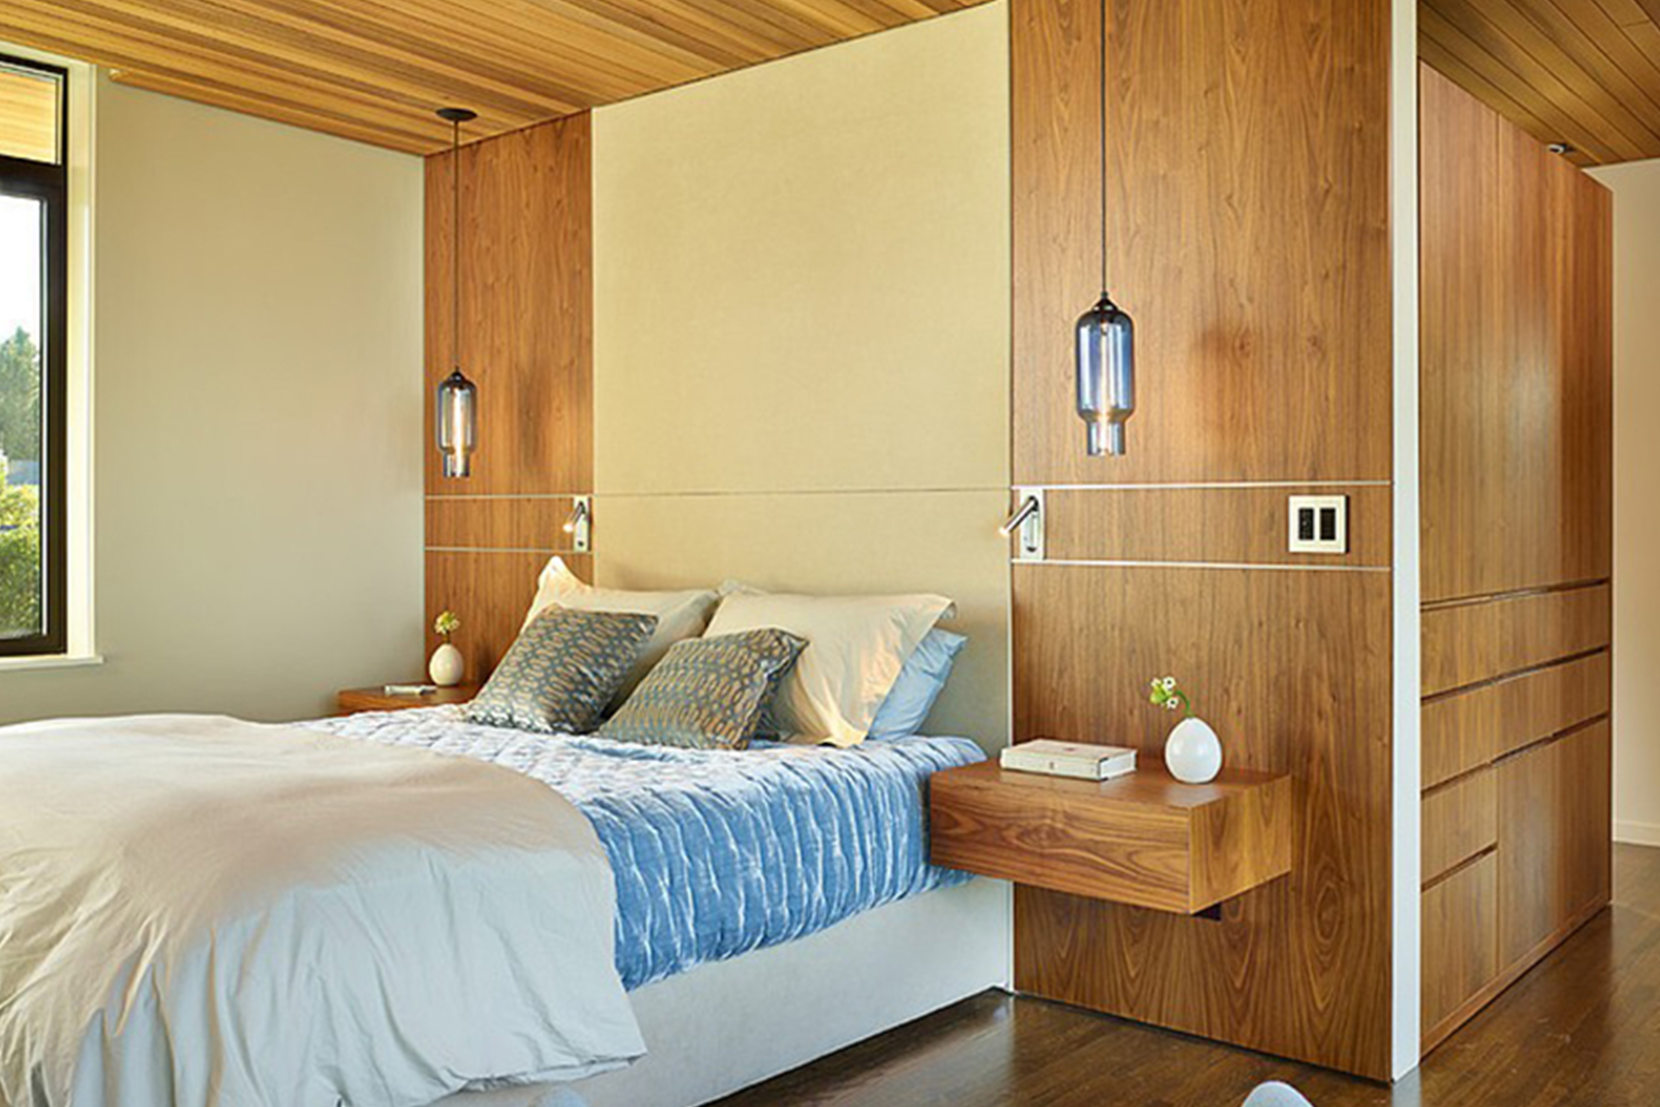 Lighting-Project-Pages_0005s_0004_Bedroom-Modern-Pendant-Lighting.png